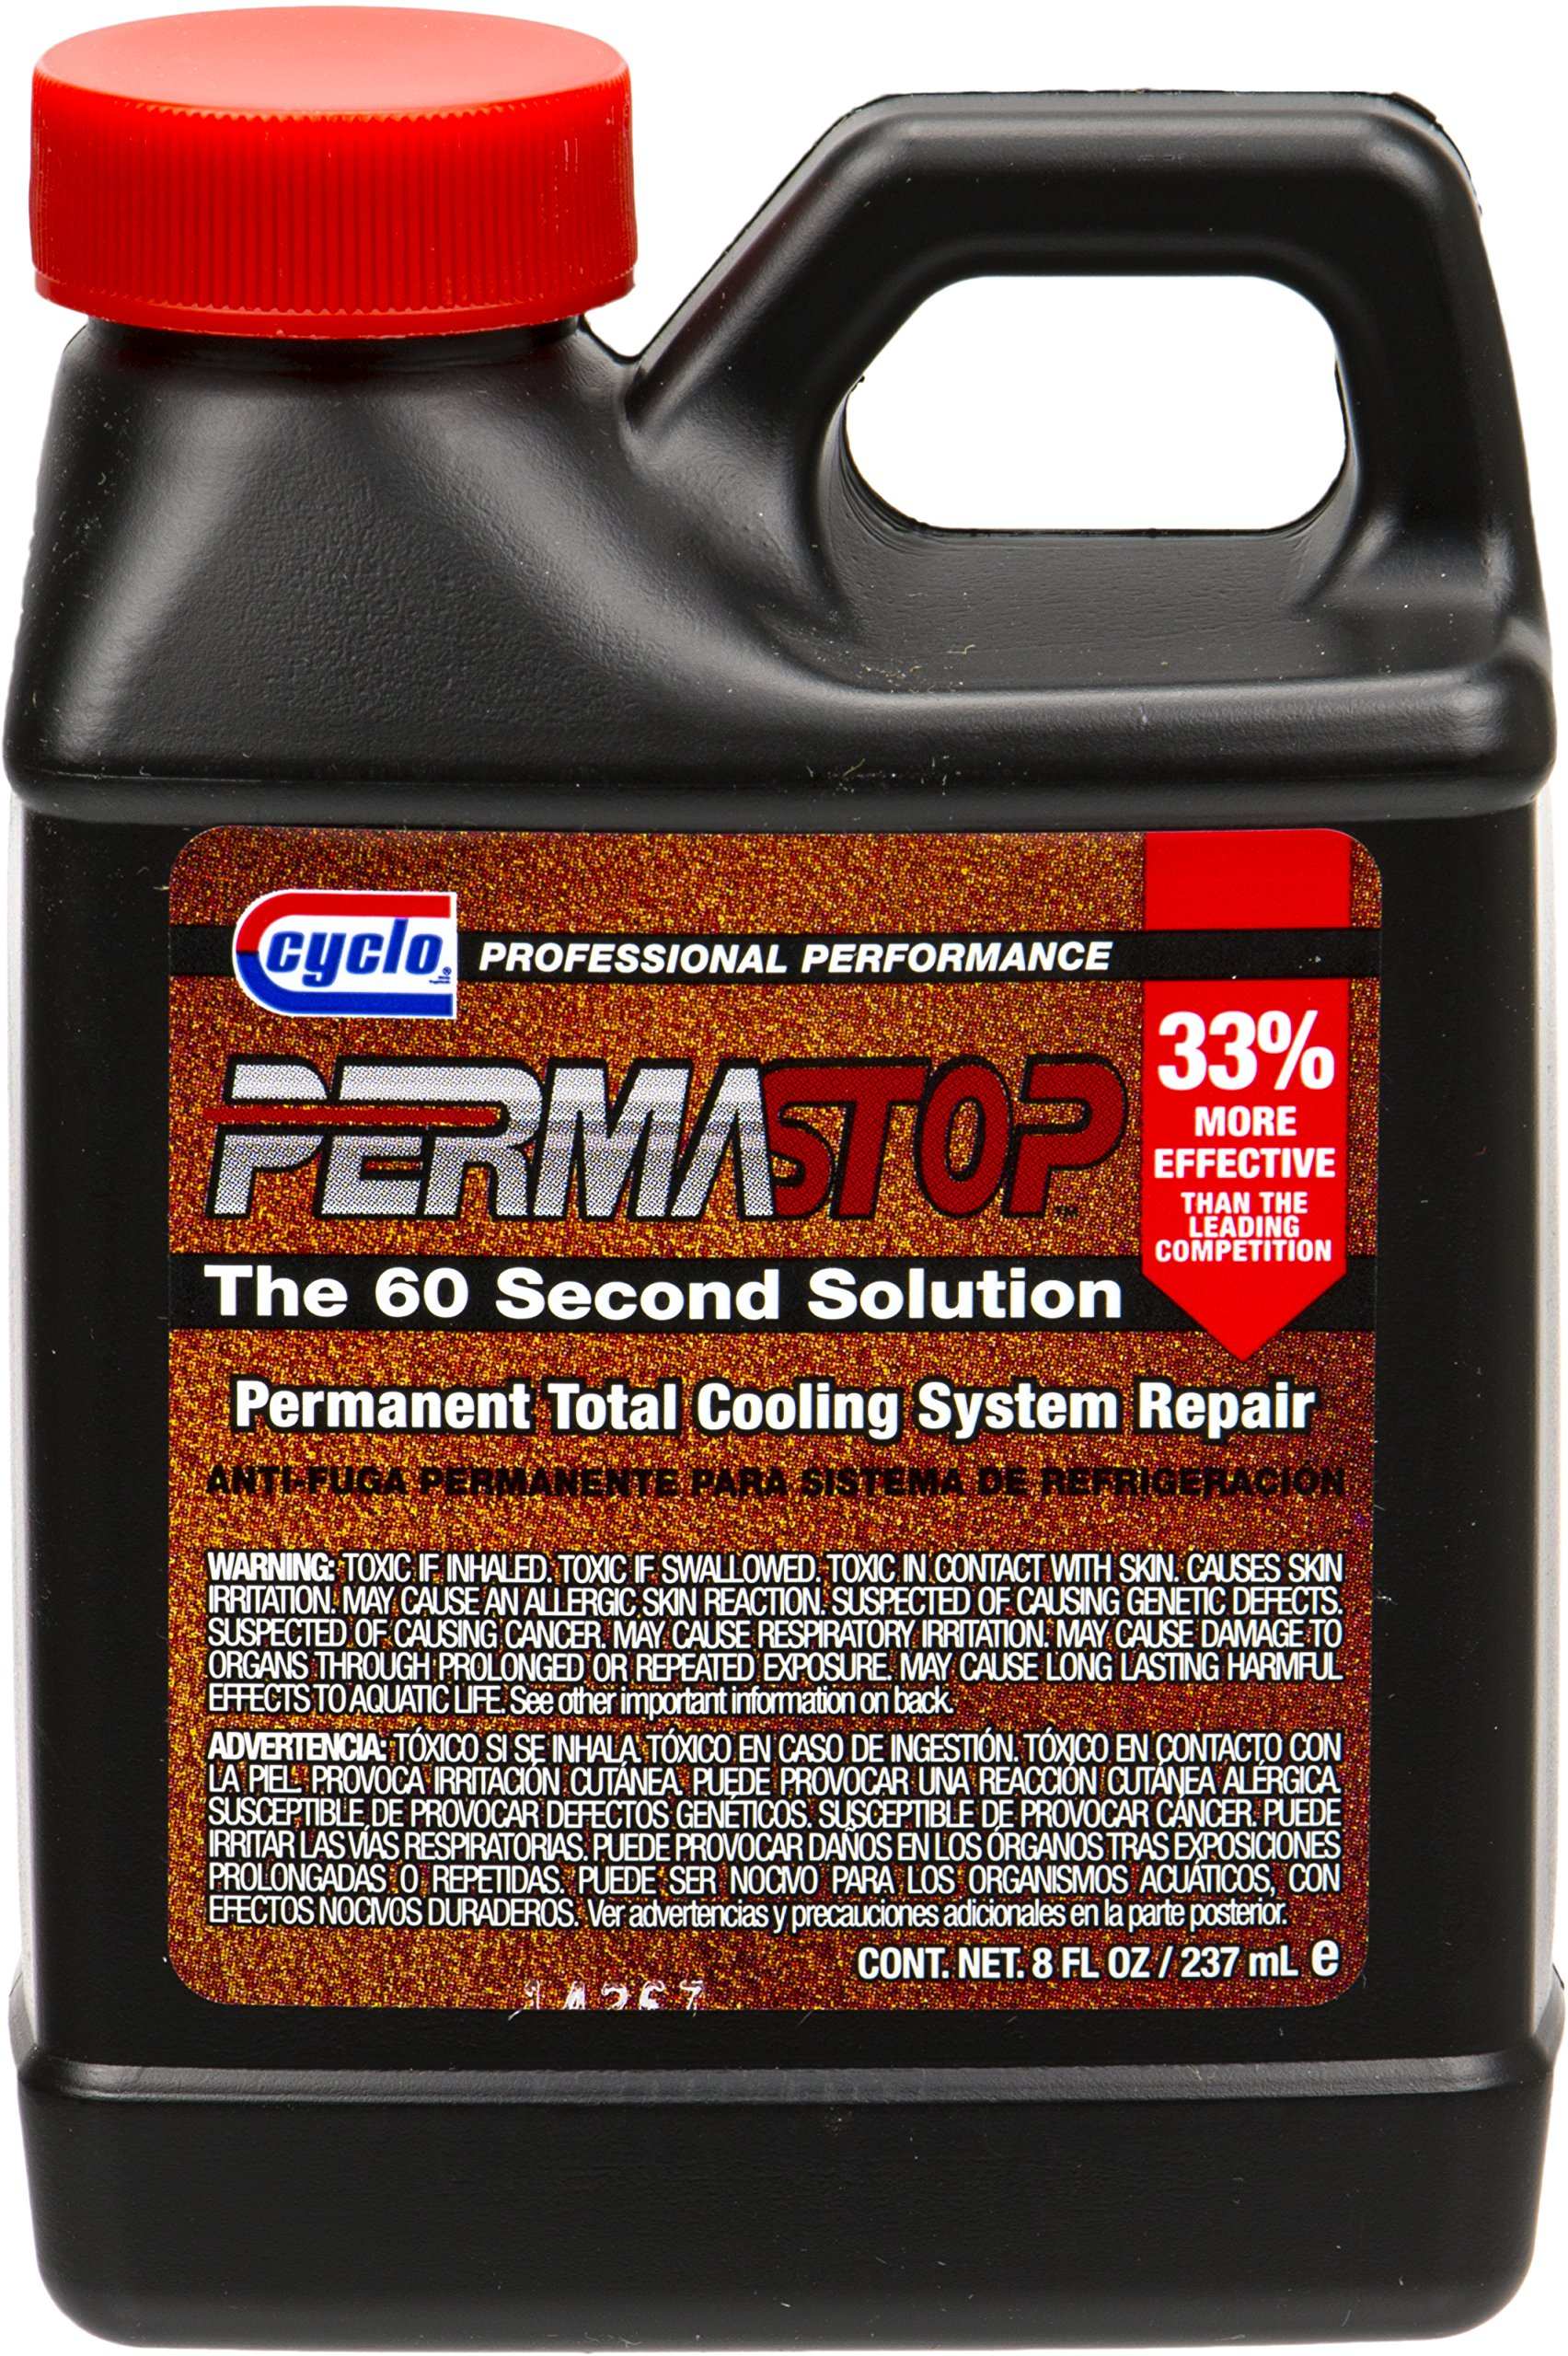 Cyclo PermaStop Permanent Total Cooling System Leak Repair, 8 fl oz, Case of 12 by Cyclo